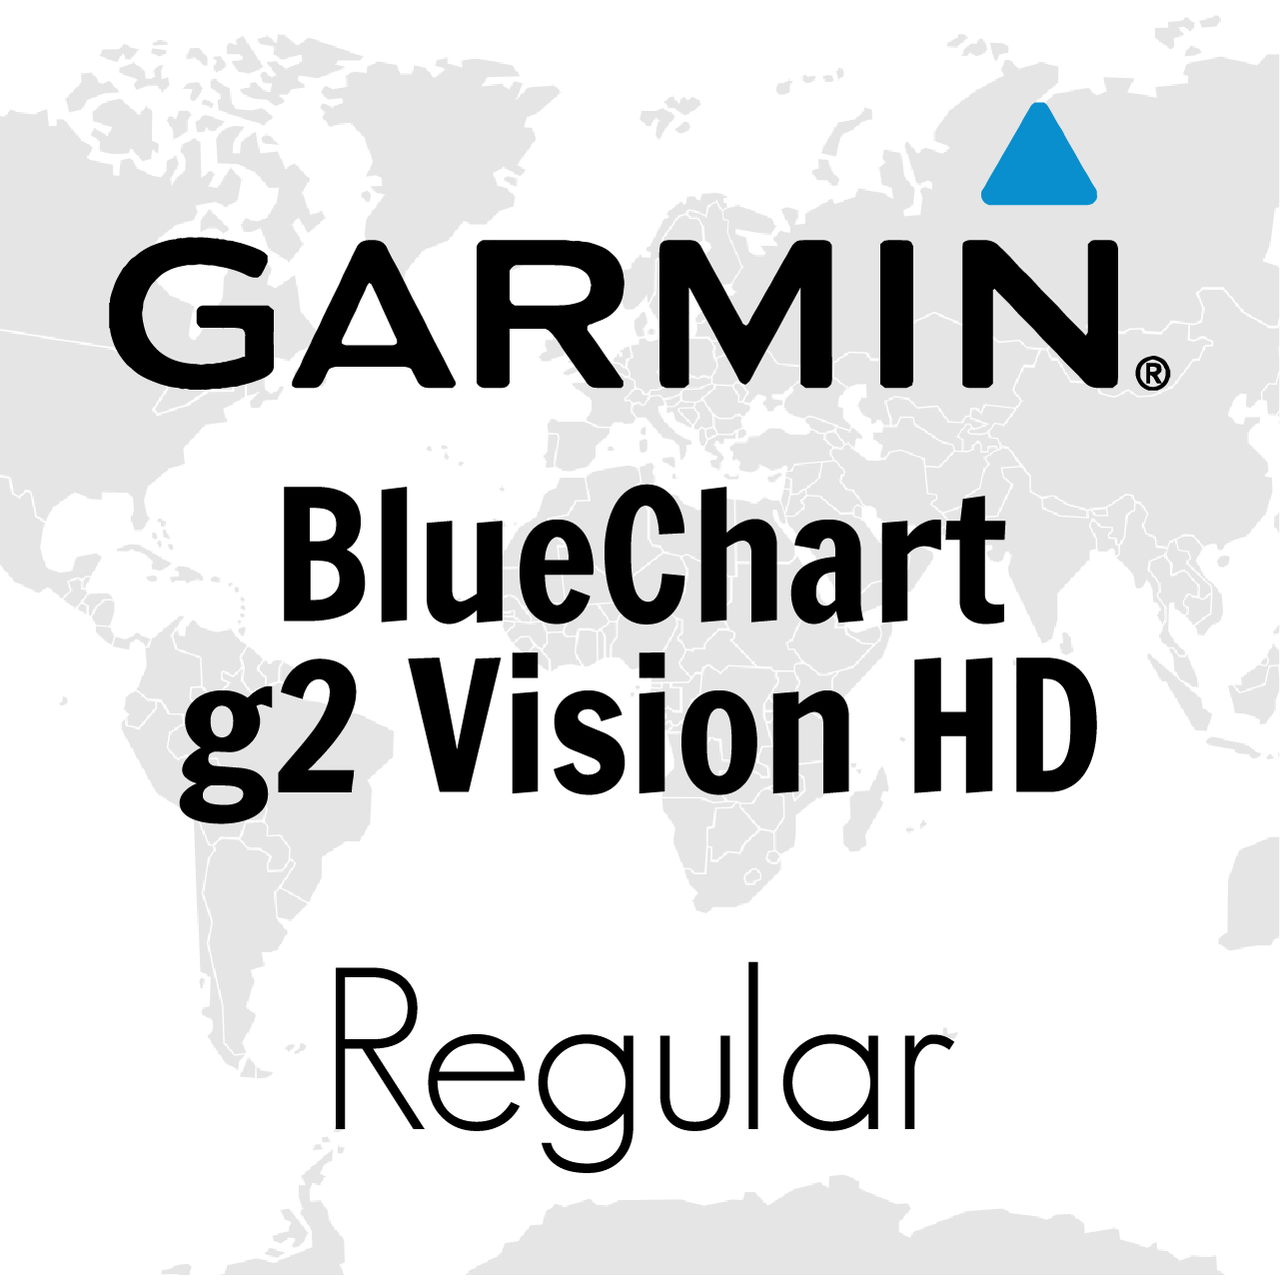 Garmin BlueChart g2 Vision HD Regular